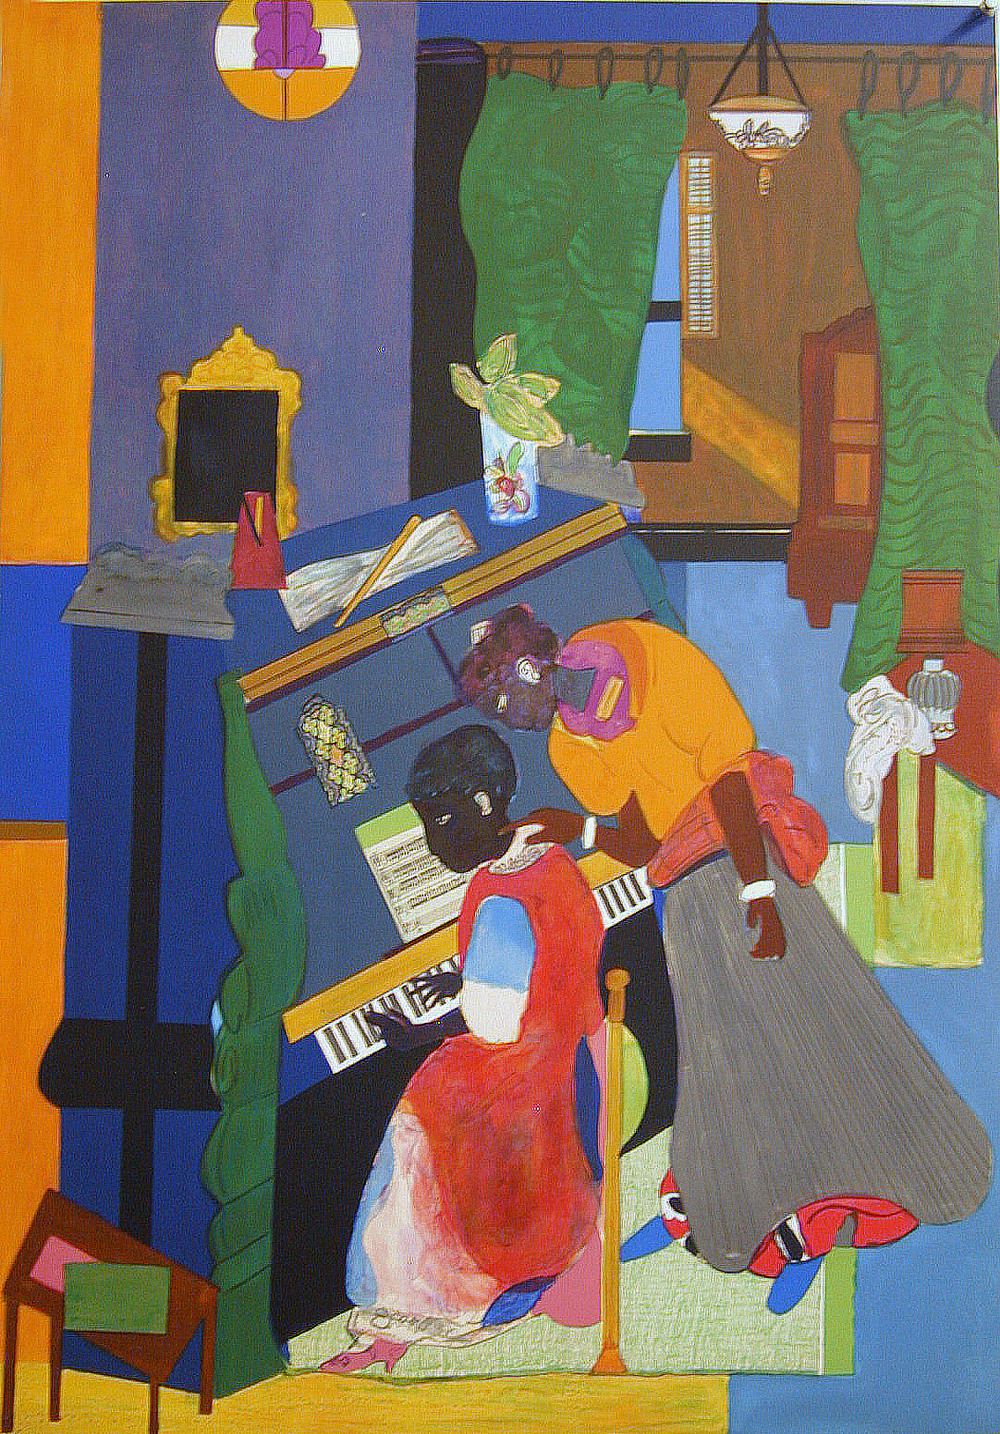 Romare Bearden, The Piano Lesson, 1983 Image courtesy of Art @ Romare Bearden Foundation/Licensed by VAGA, New York, NY